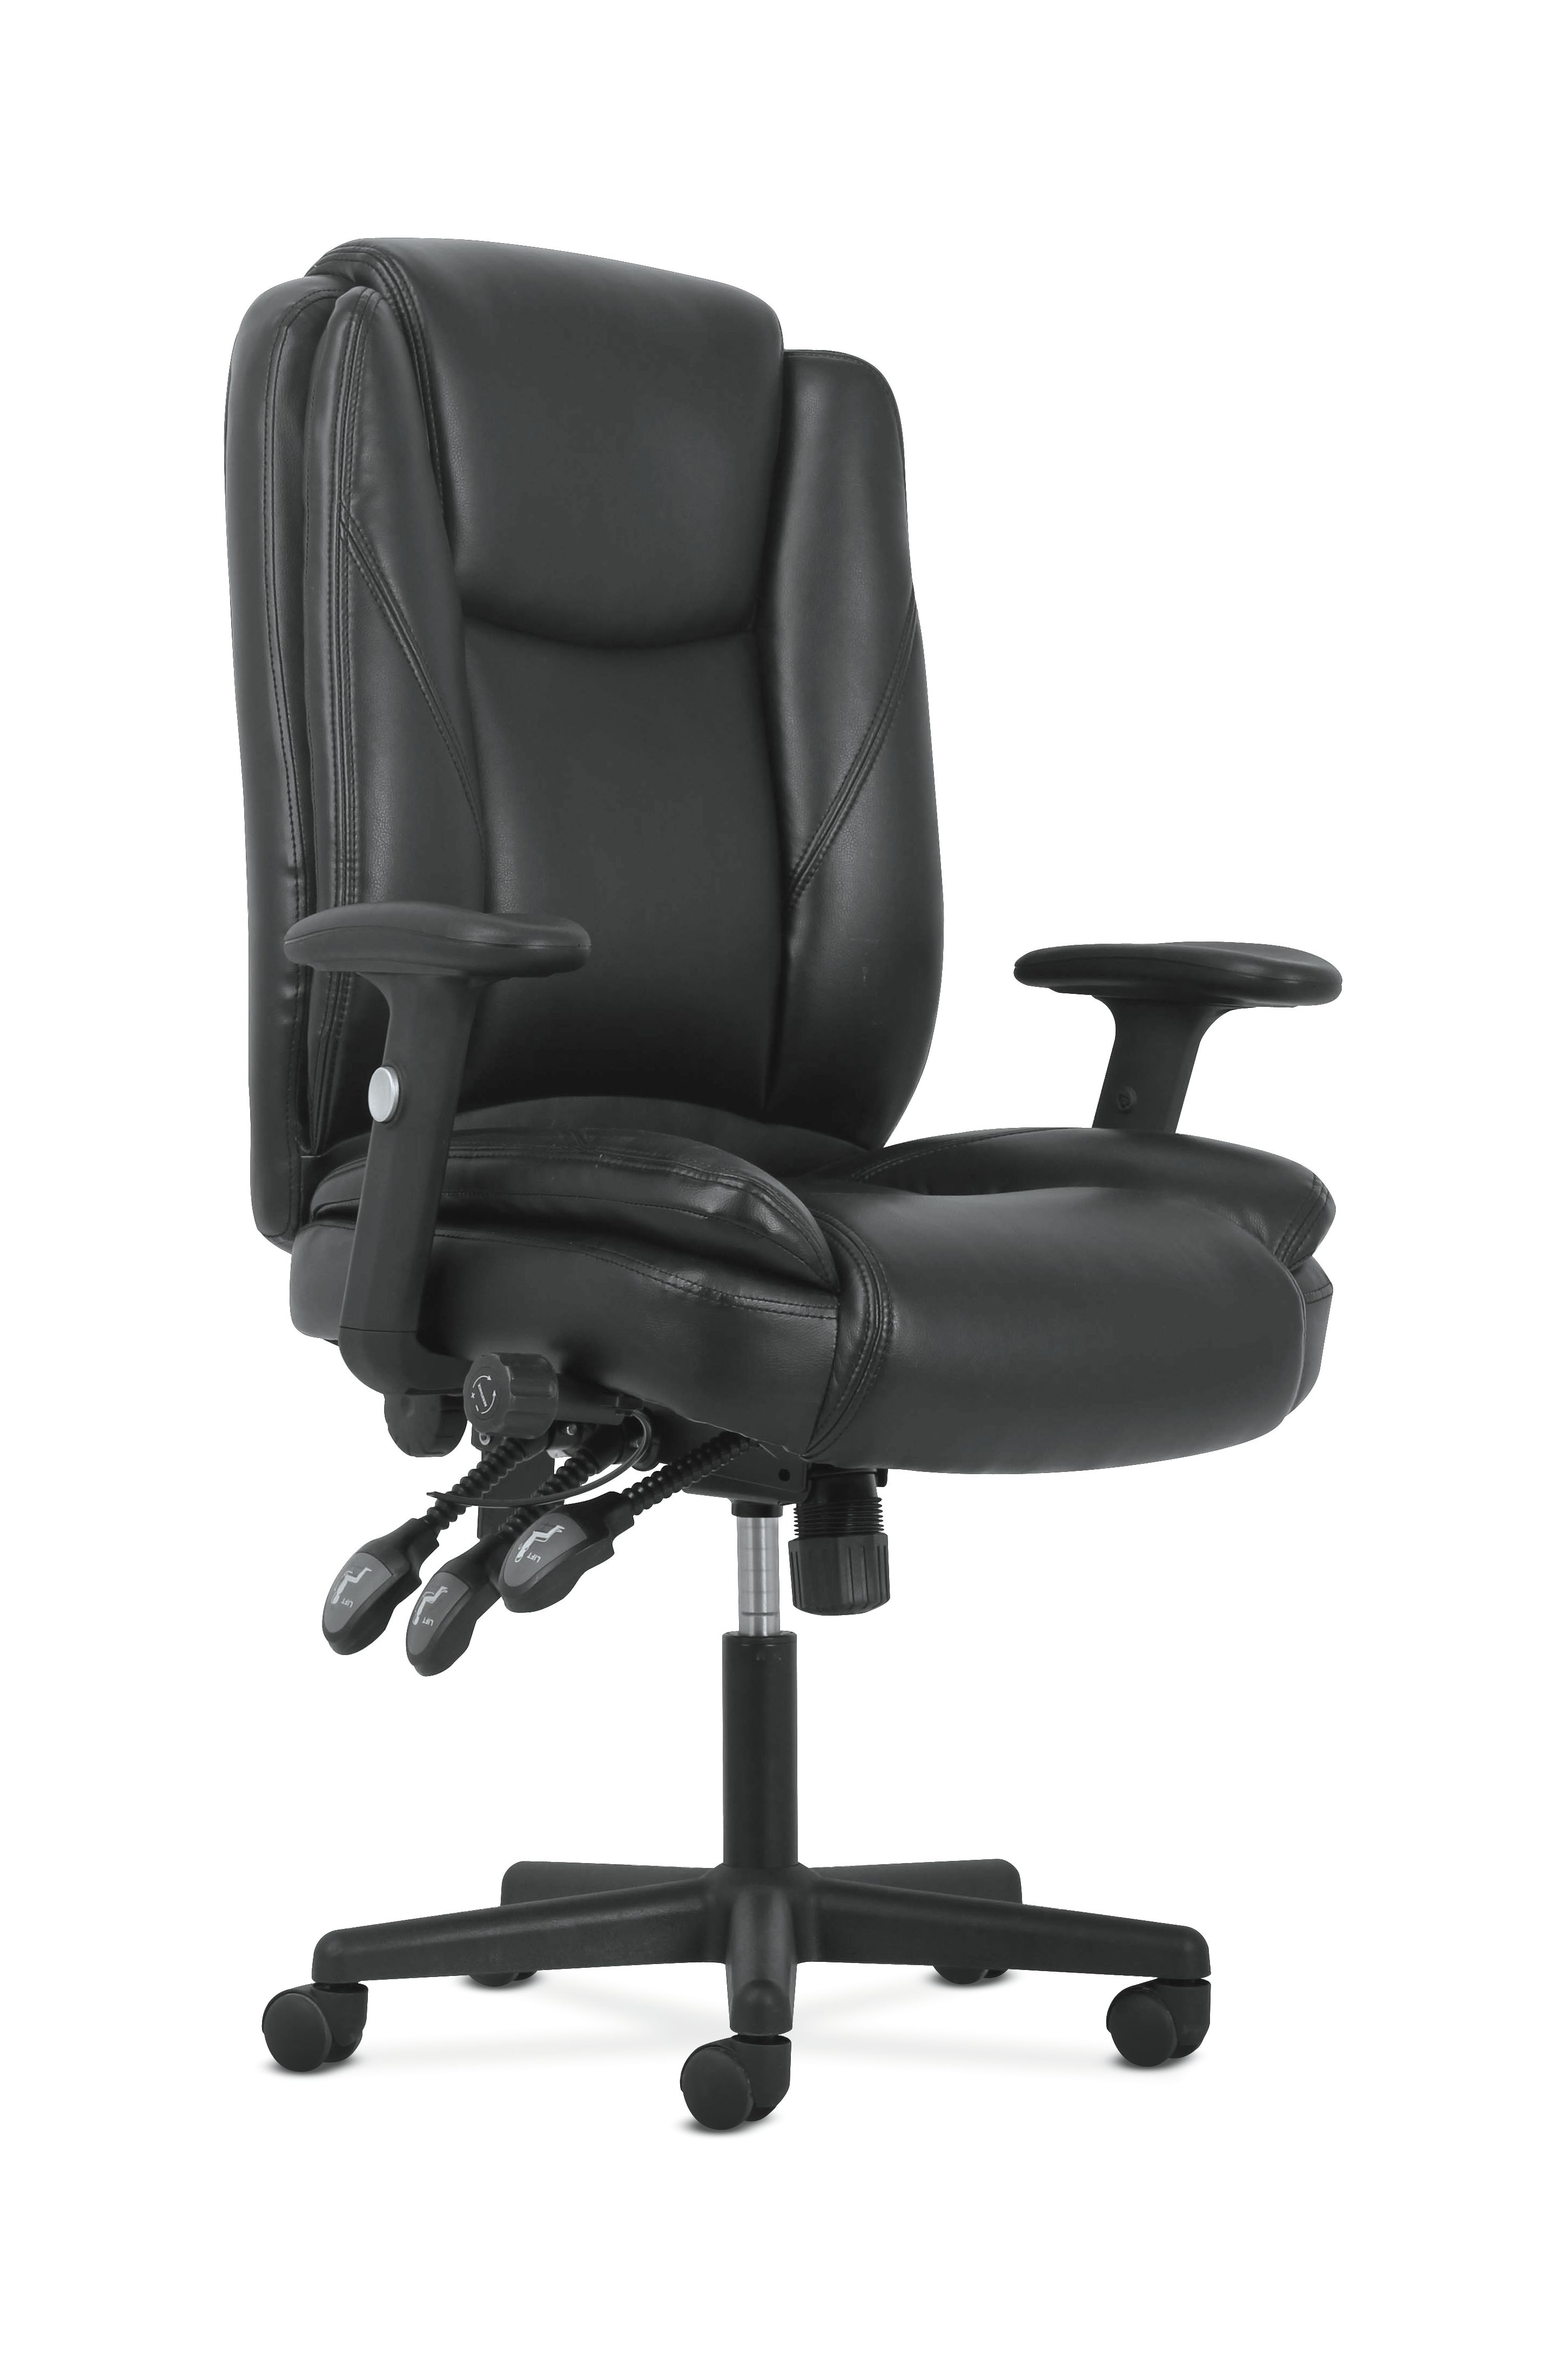 Exceptionnel Sadie High Back Leather Office/Computer Chair   Ergonomic Adjustable Swivel  Chair With Lumbar